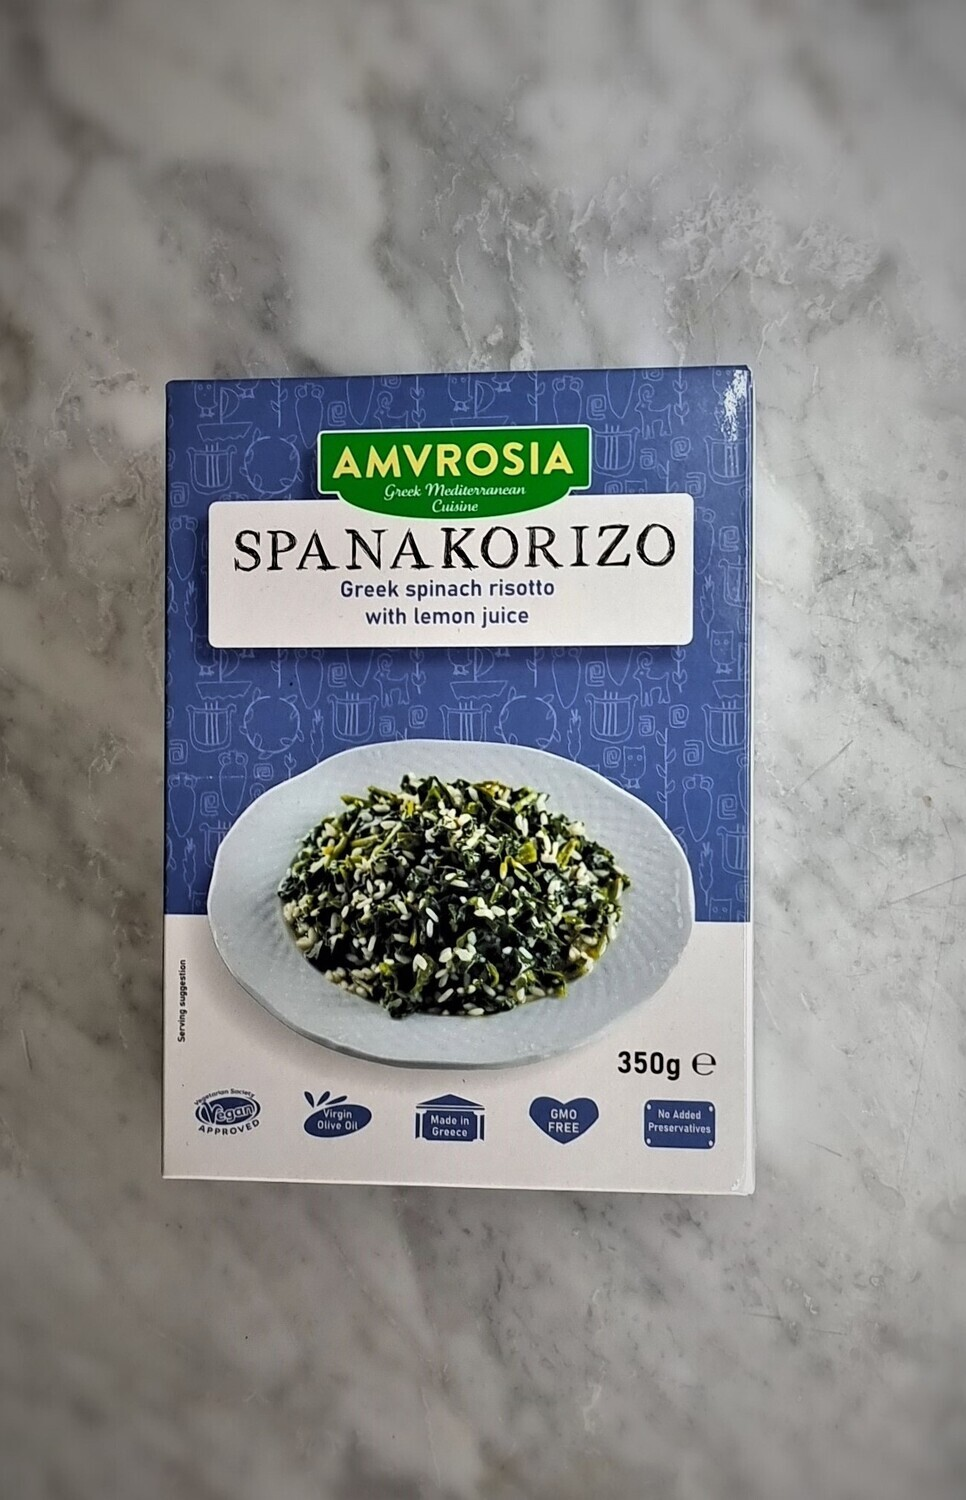 Spanakoriso - Greek Spinach Risotto with Lemon